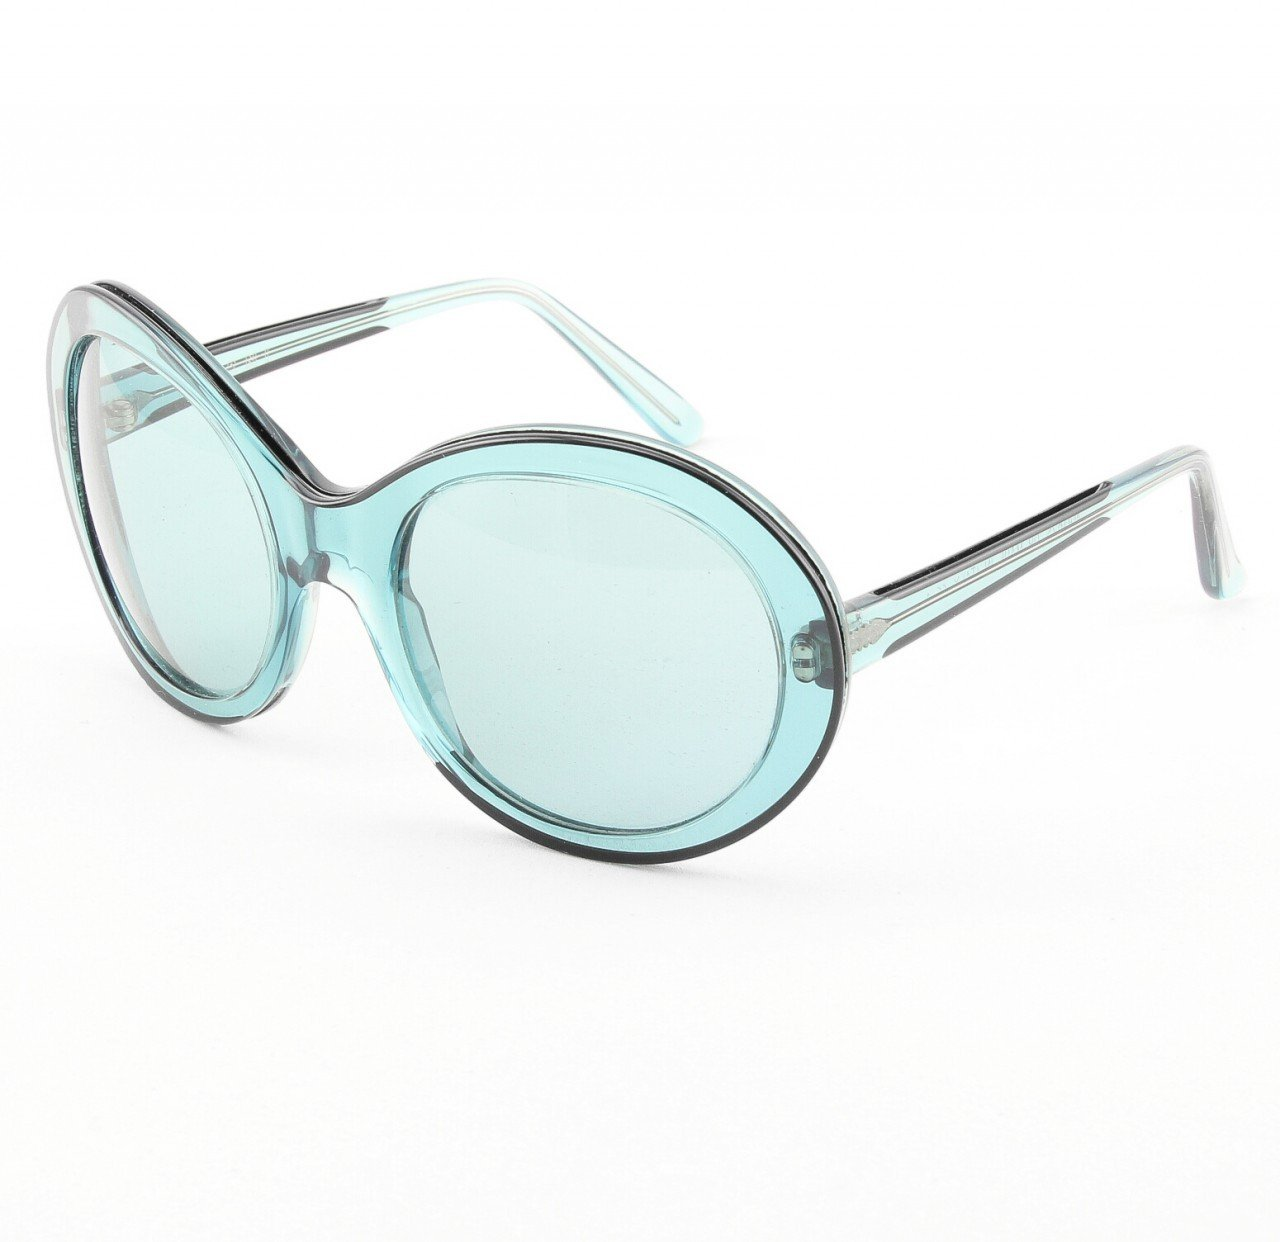 Marni MA162S Sunglasses Col. 09 Oversized Translucent Blue Frame with Blue Gradient Lenses